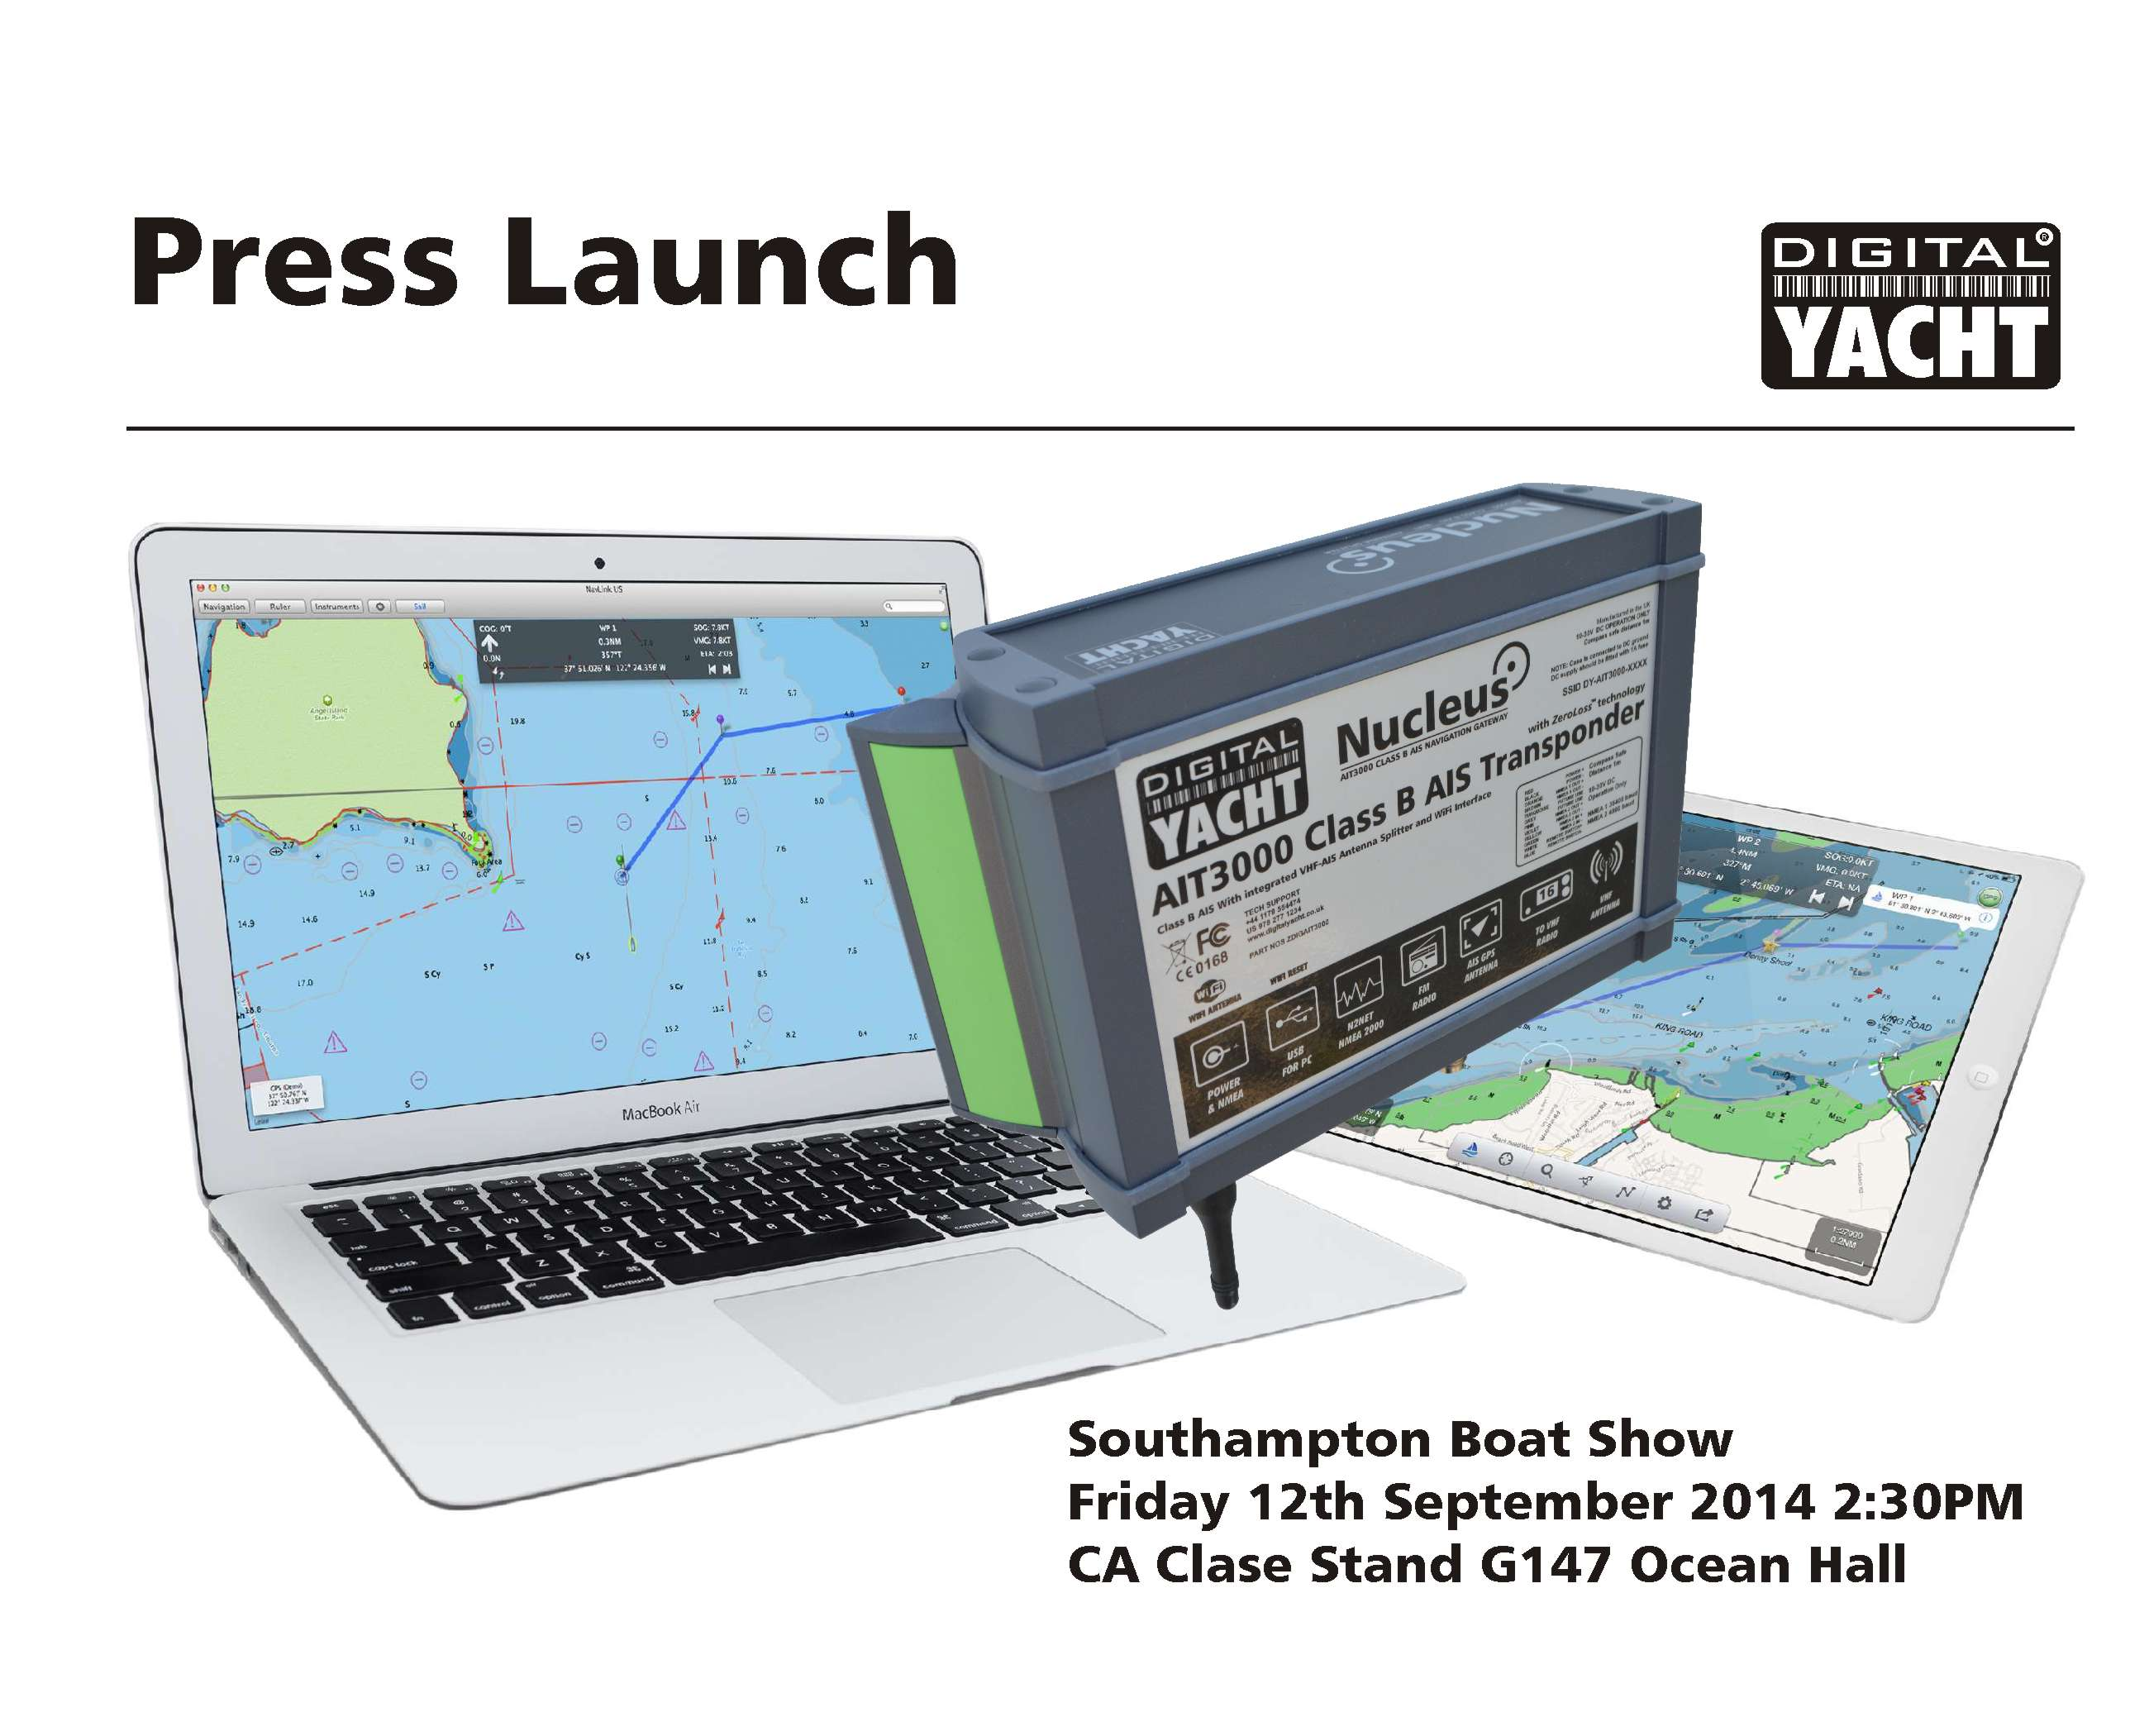 Digital Yacht Press & Dealer Launch Friday 12th Sept 2:30PM